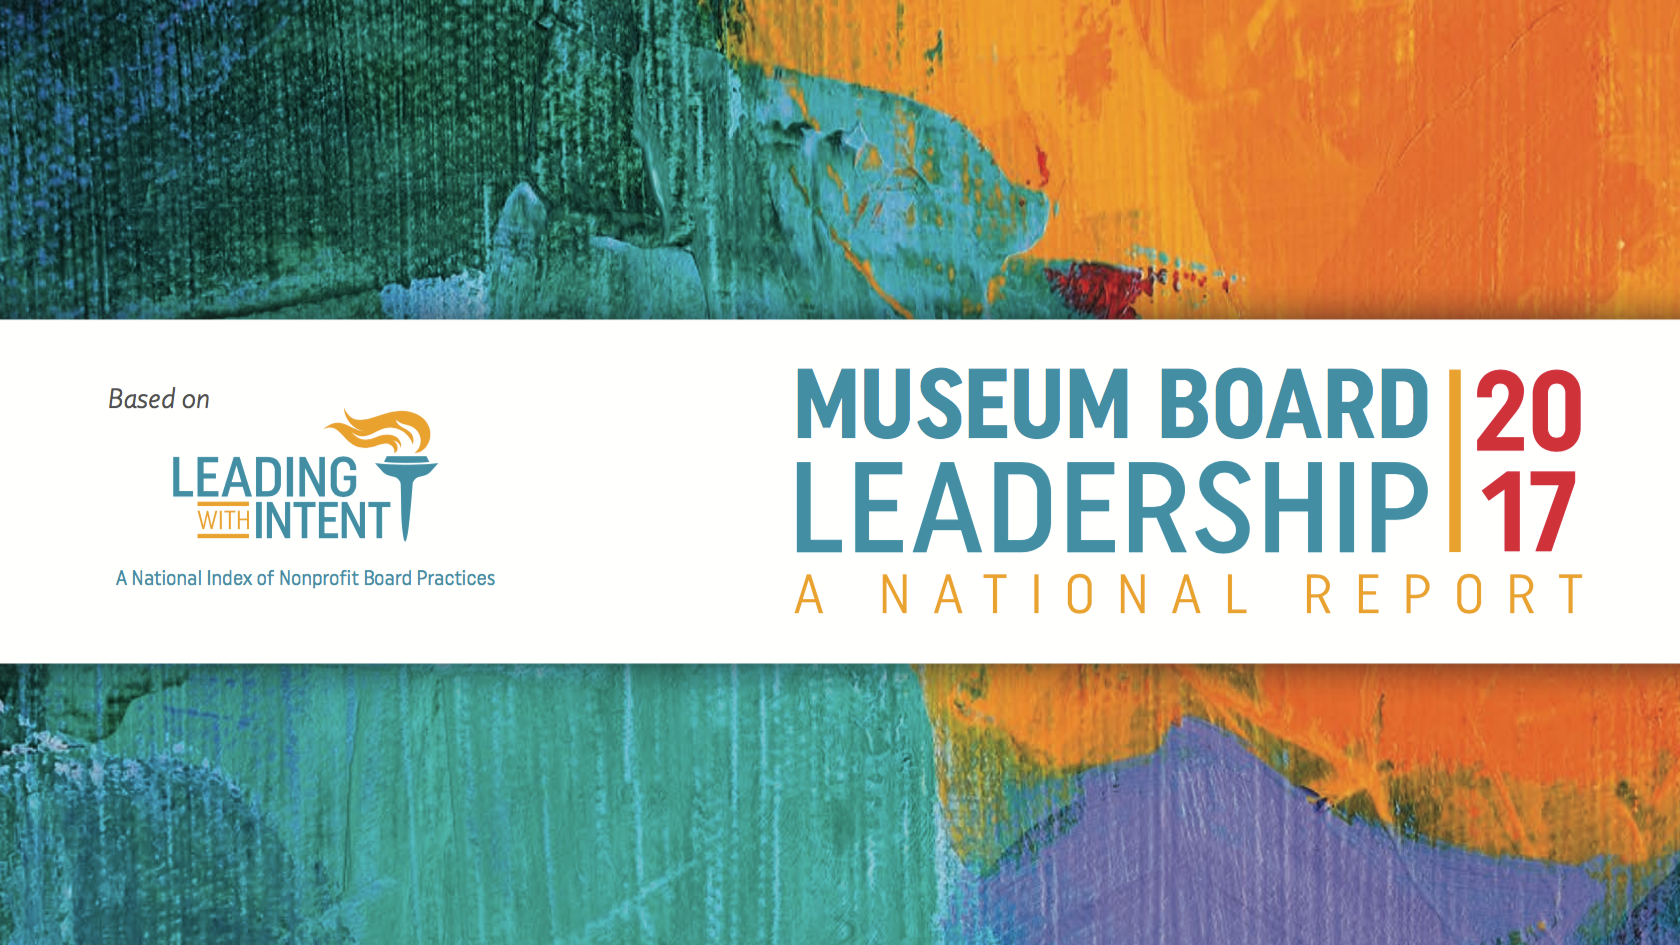 Cover Image from the Museum Board Leadership report. Multi-colored abstract background behind title text